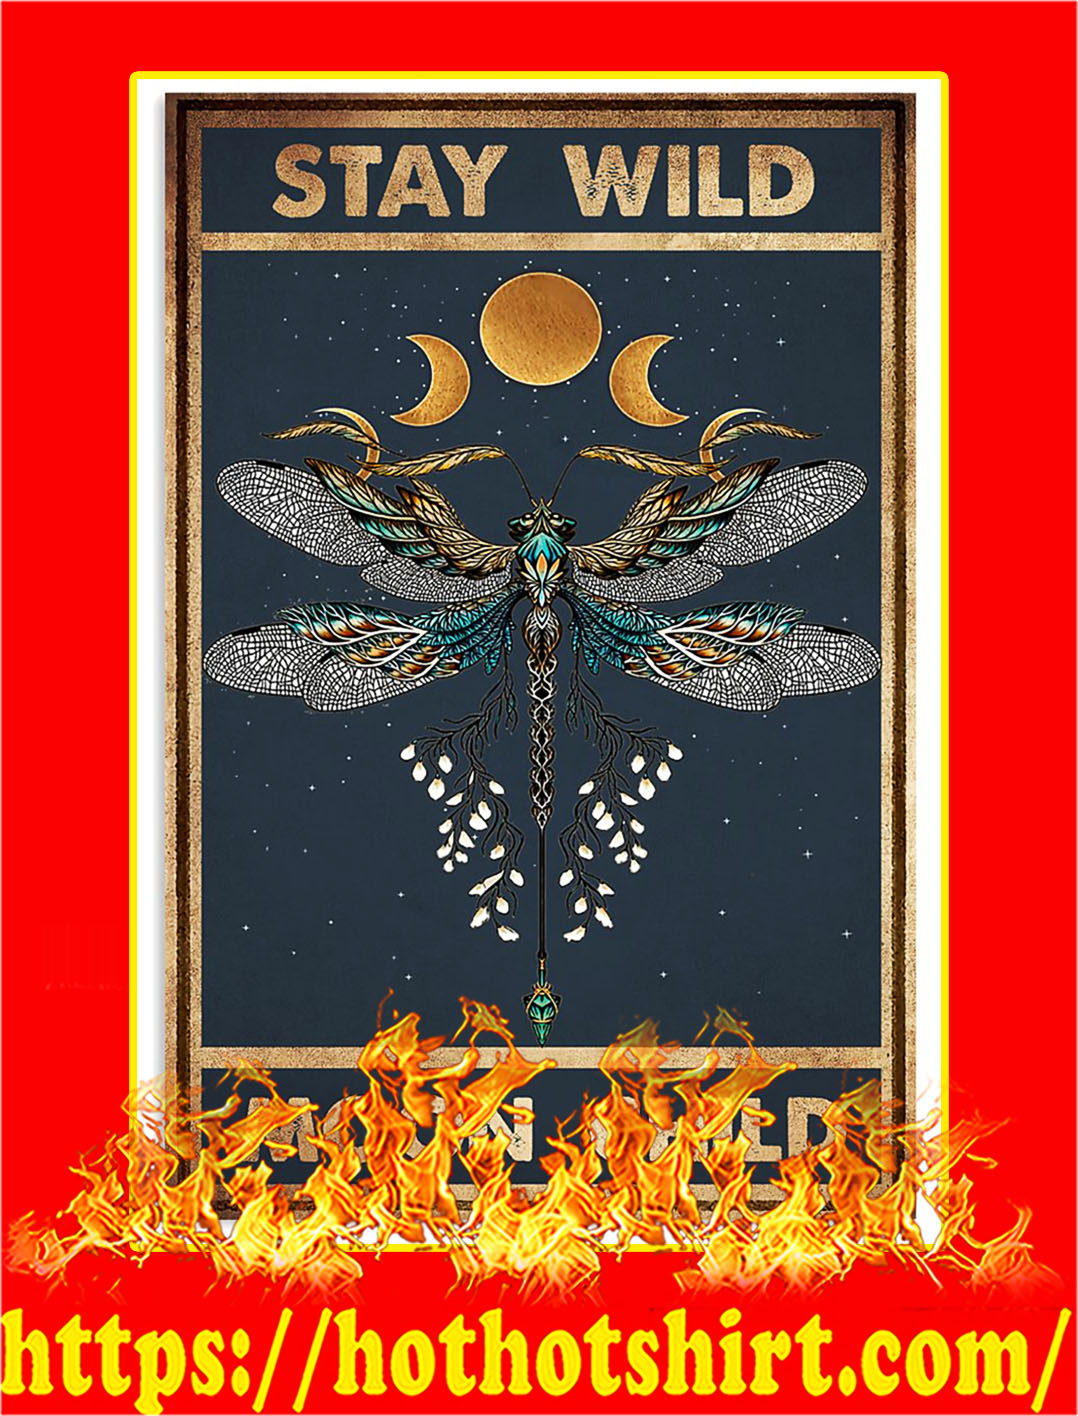 Stay wild moon child dragonfly poster - A1